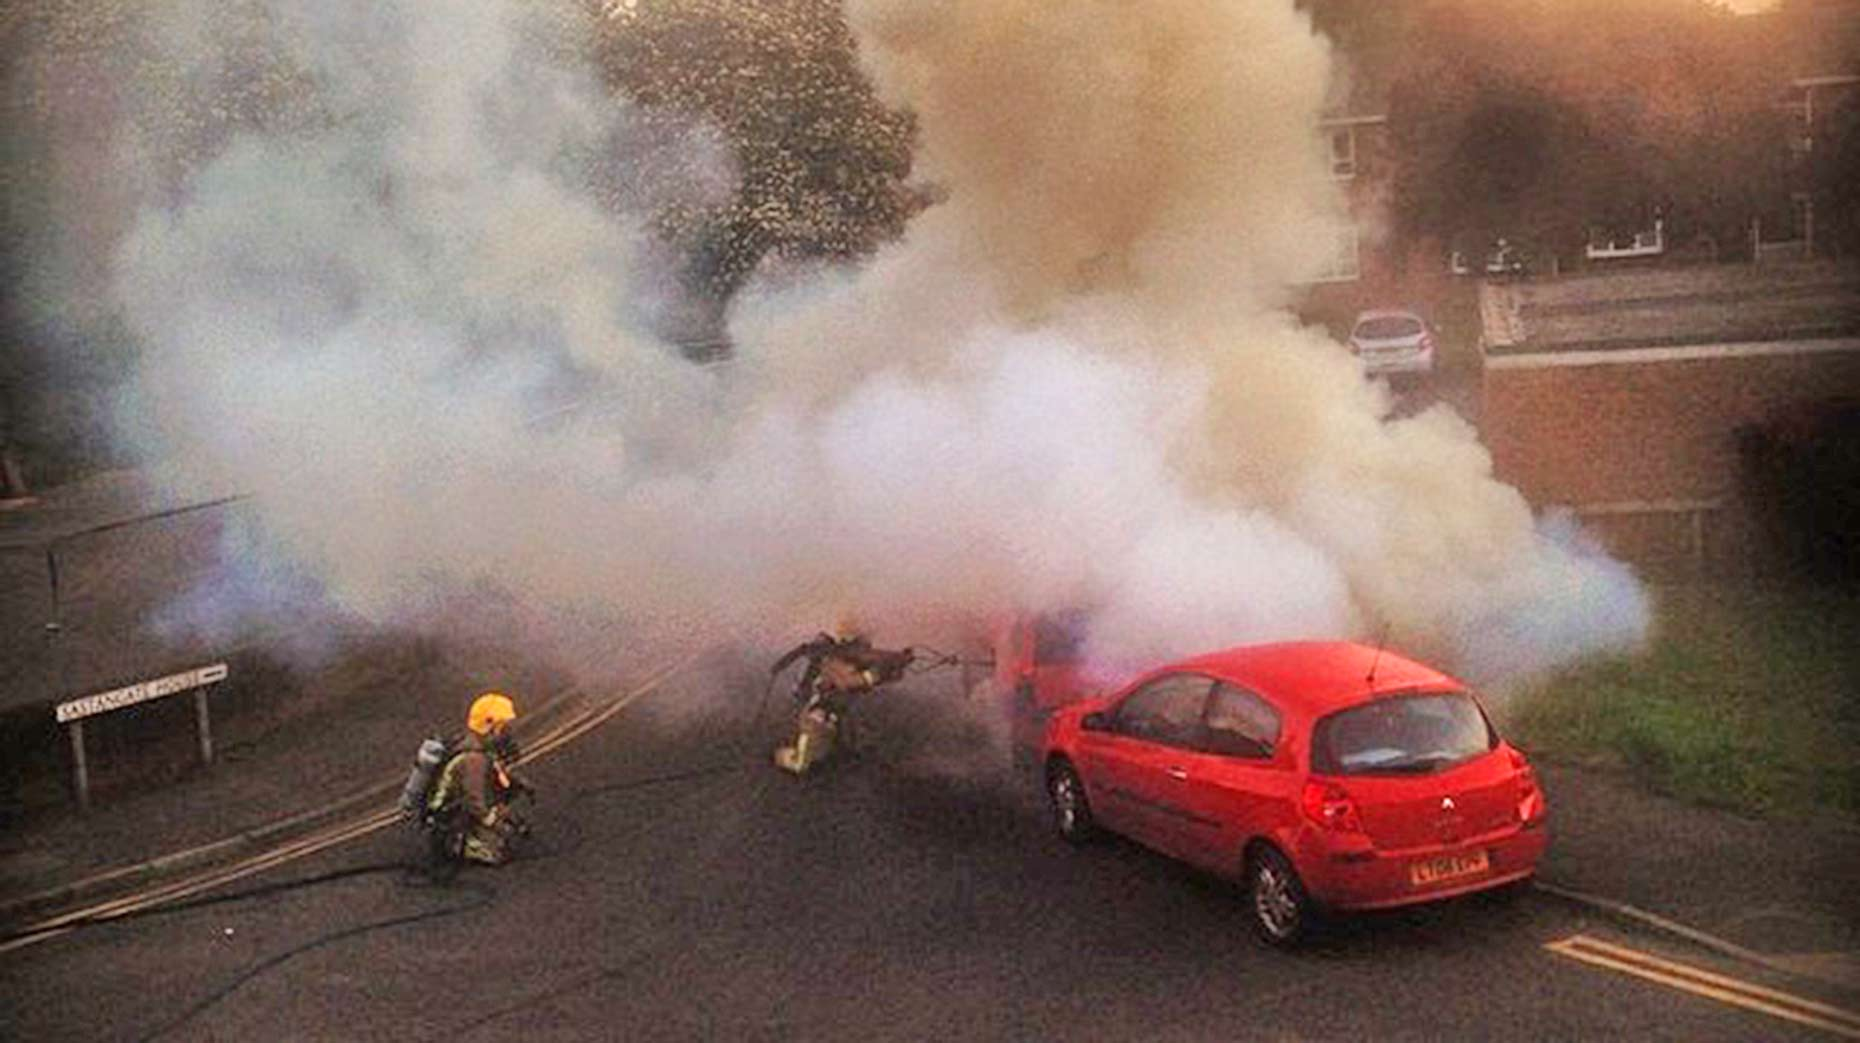 A red Vauxhall Corse was set on fire on Rasen Lane on May 18. Photo: Martyn Bewick